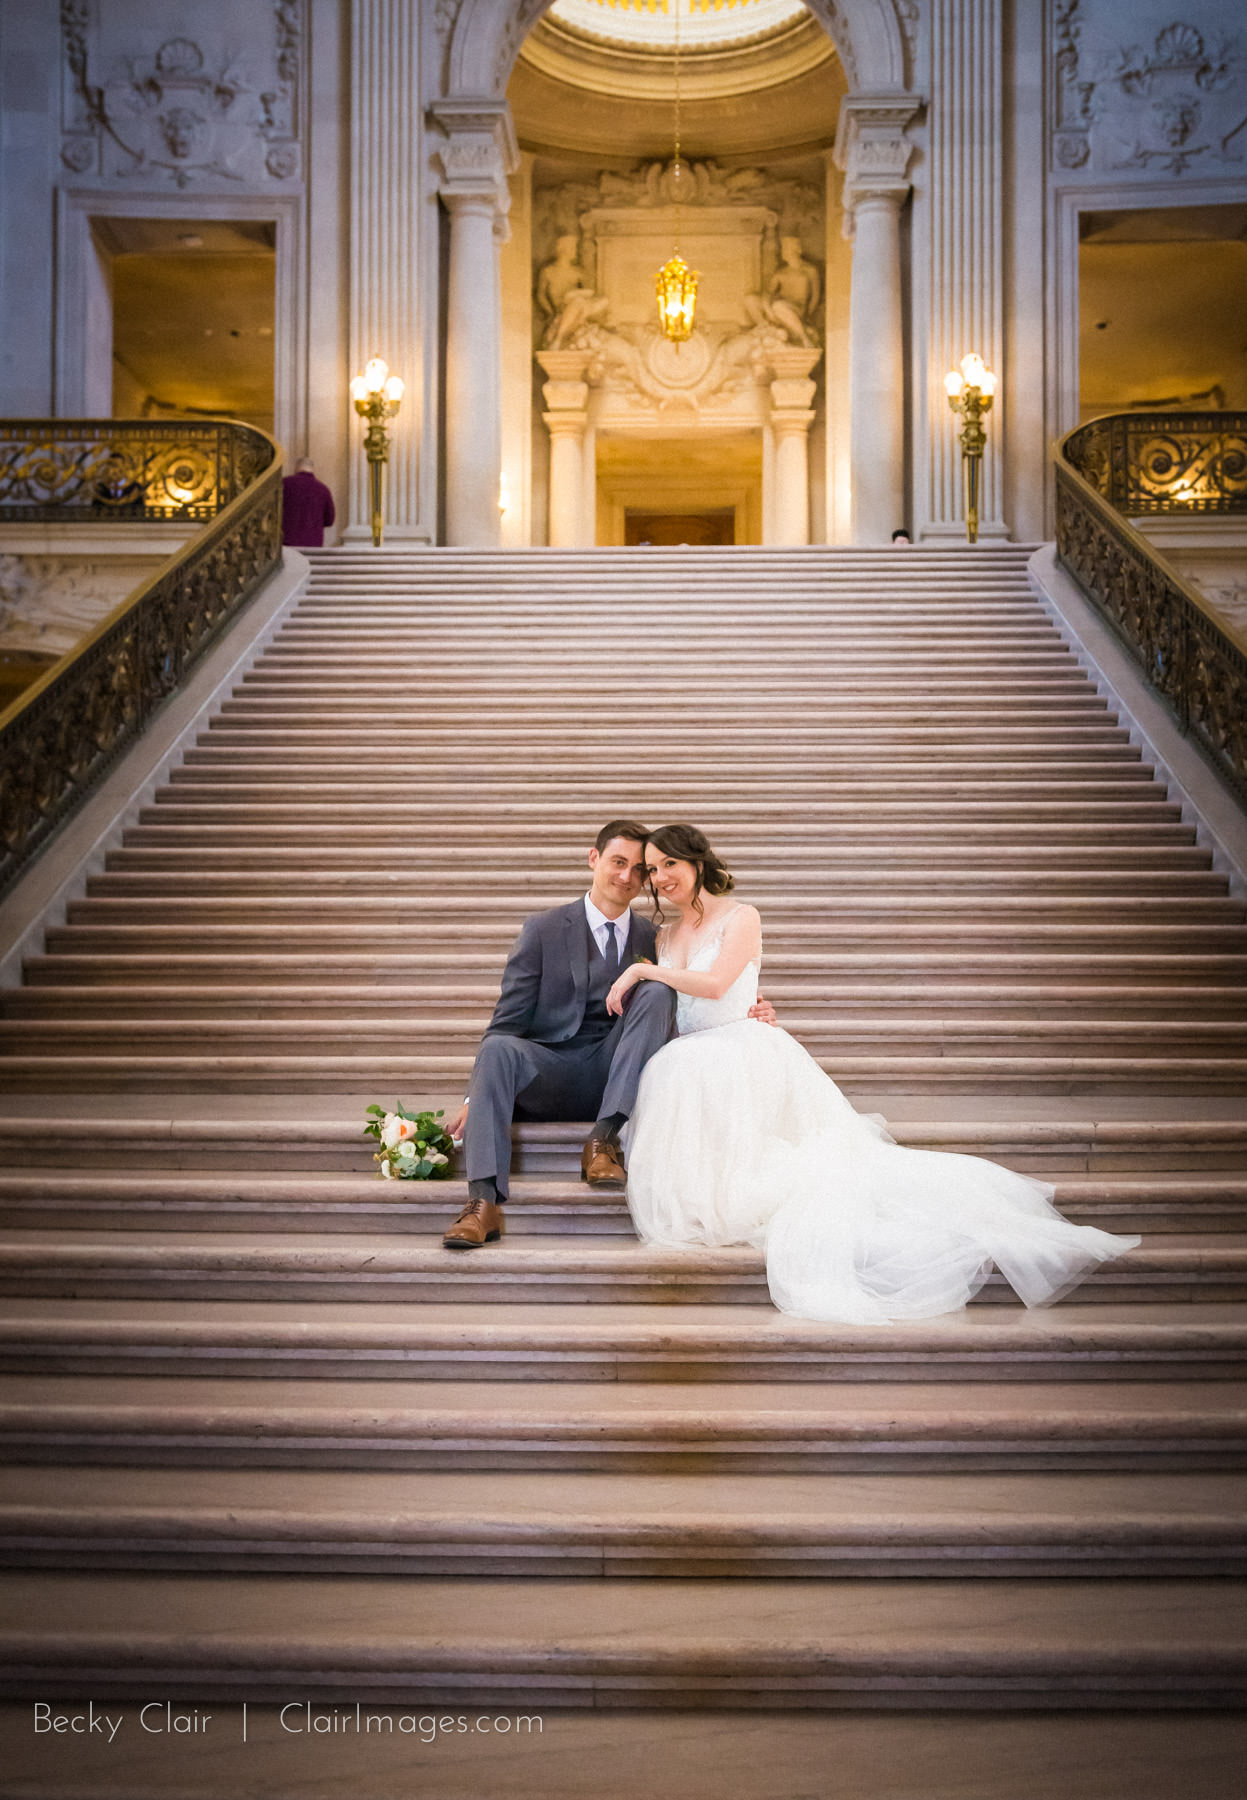 San Francisco Weddings - San Francisco City Hall © Clair Images 2017